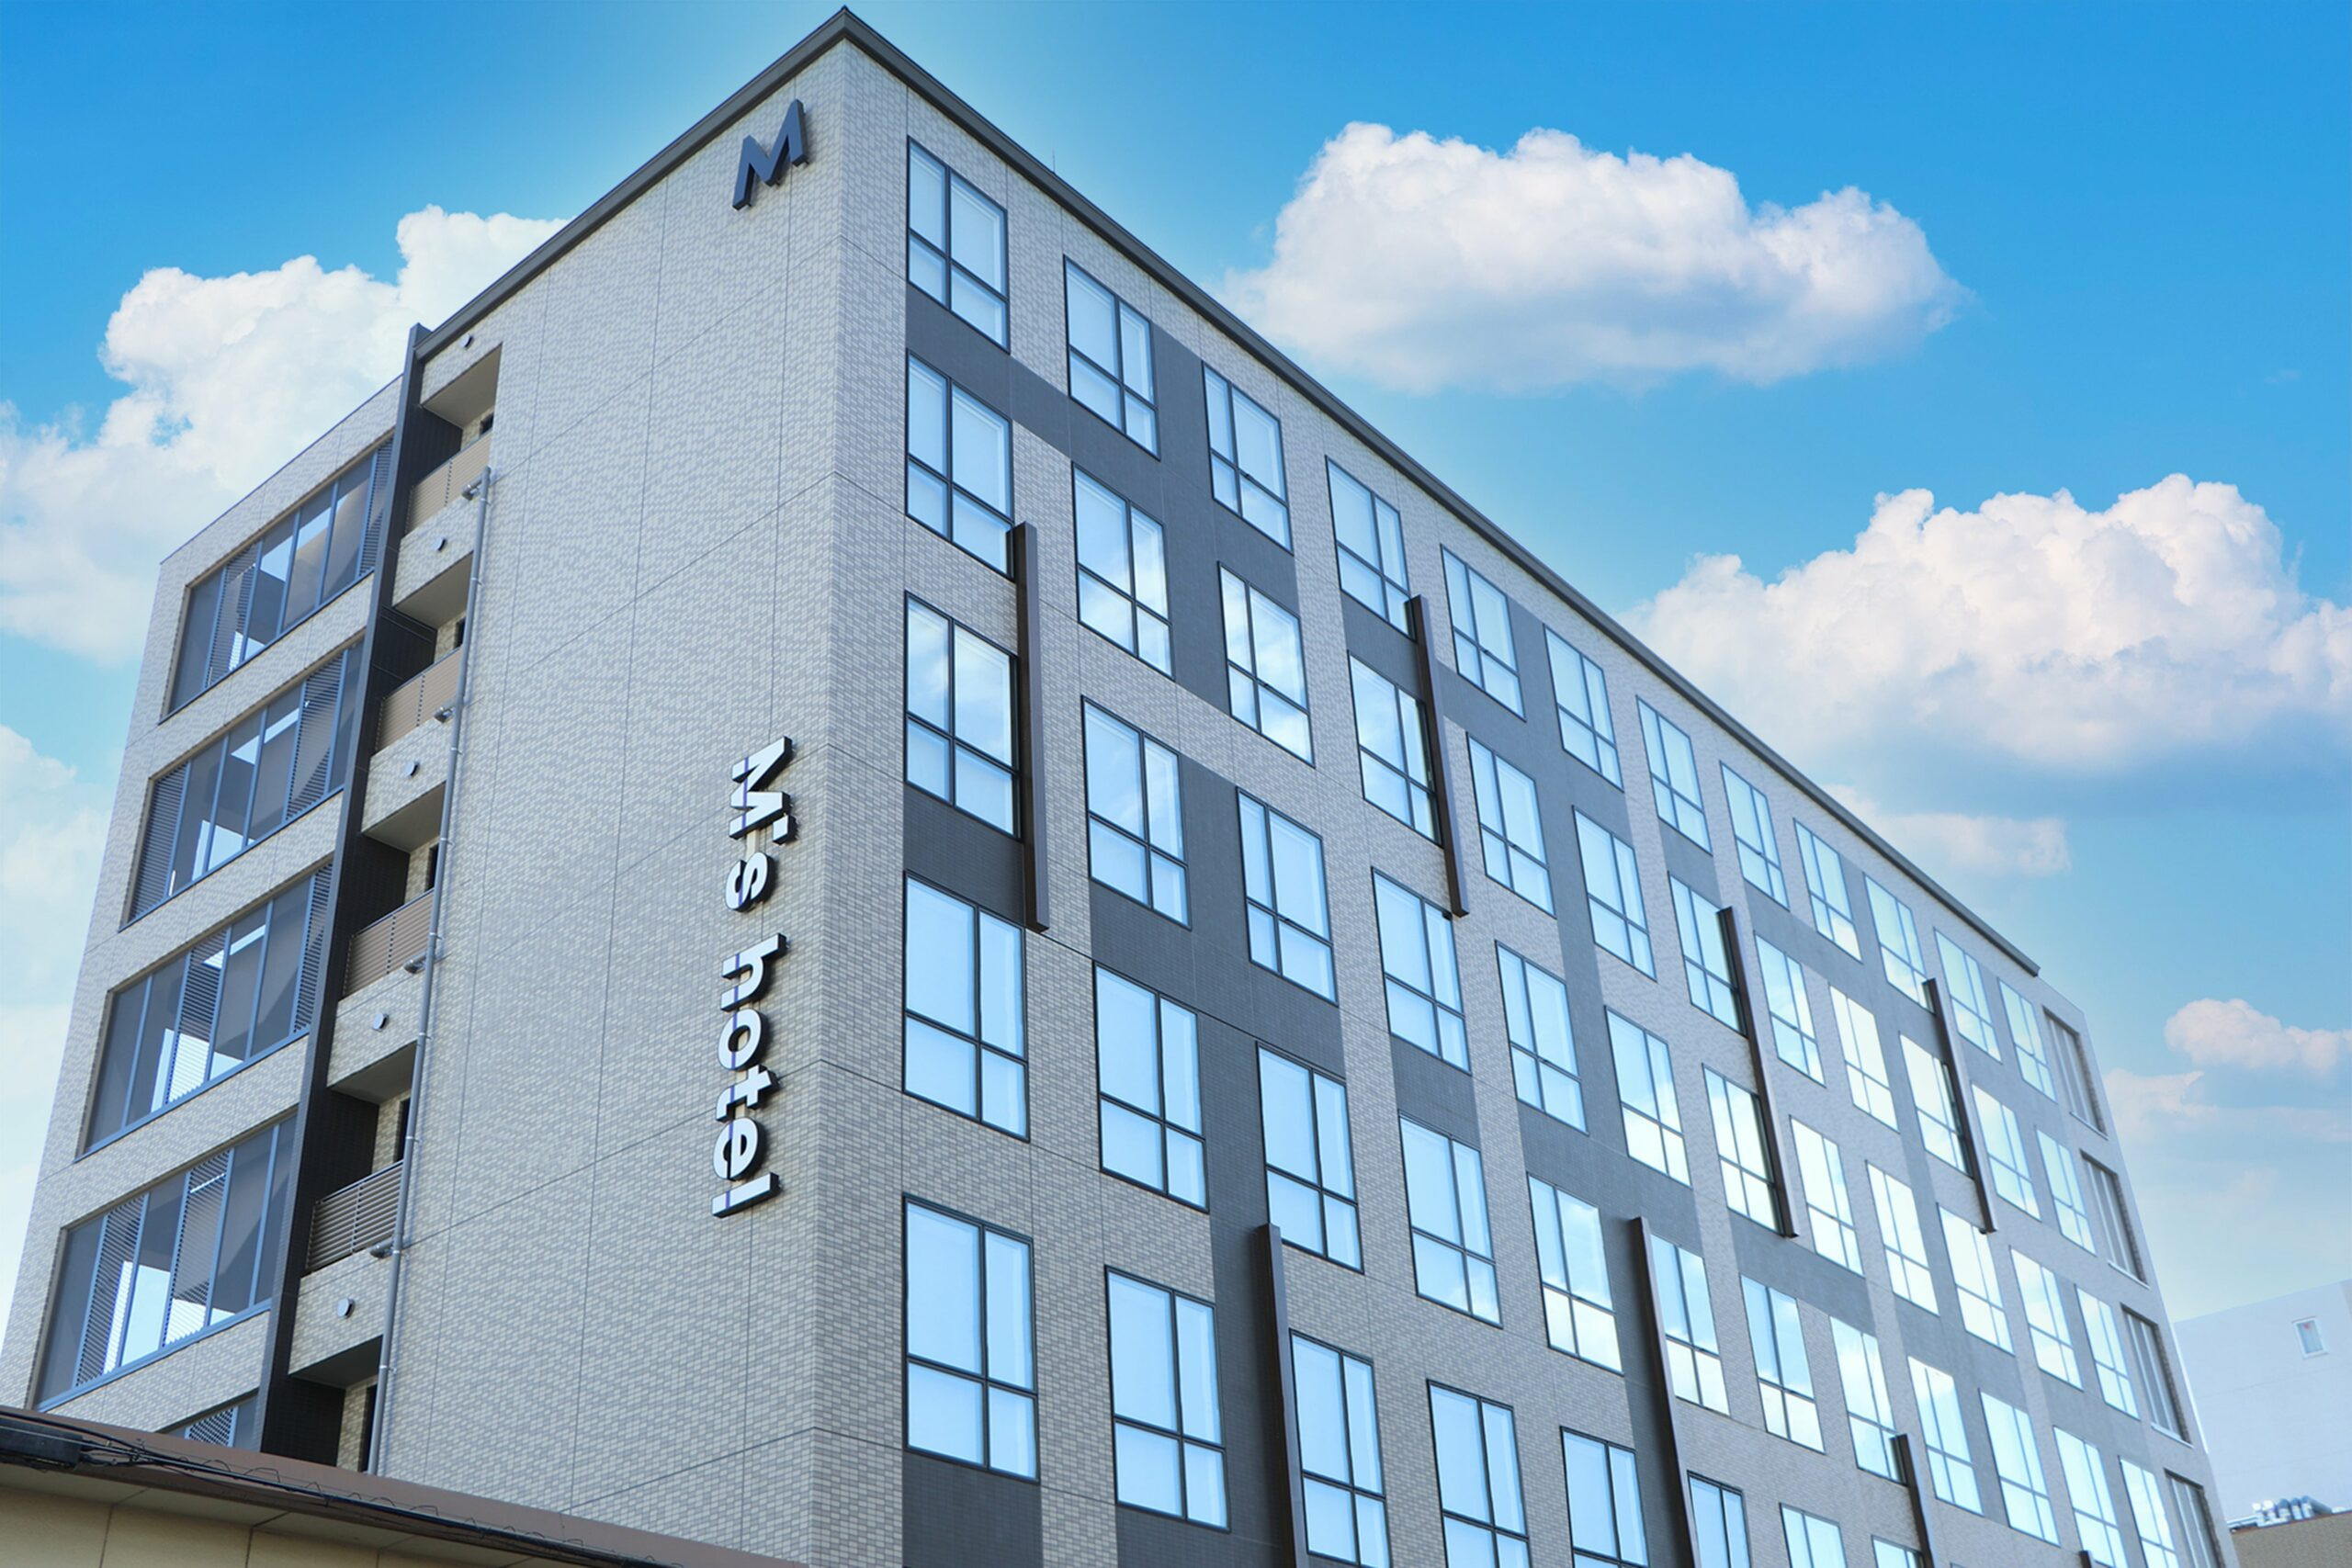 HOTEL THE M's KYOTOのイメージ写真